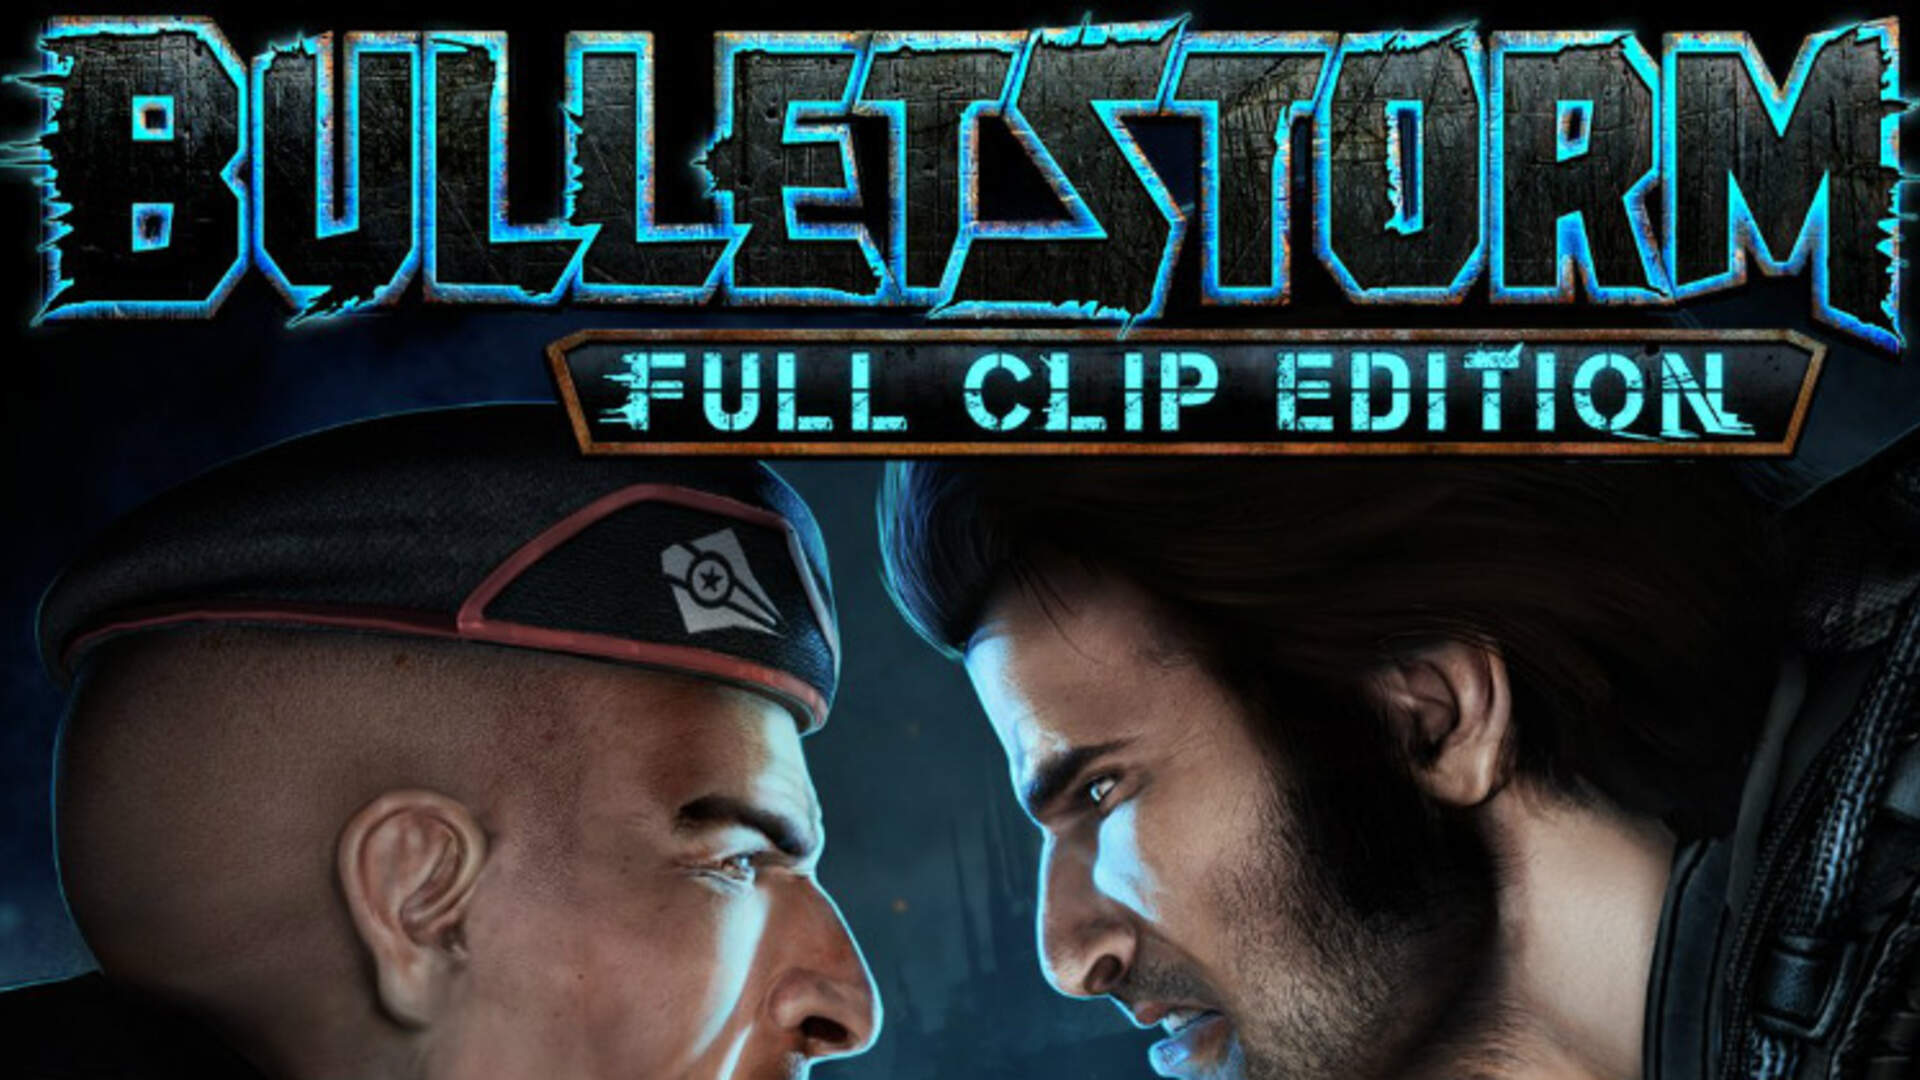 Bulletstorm Gets the Remaster Treatment With Full Clip Edition